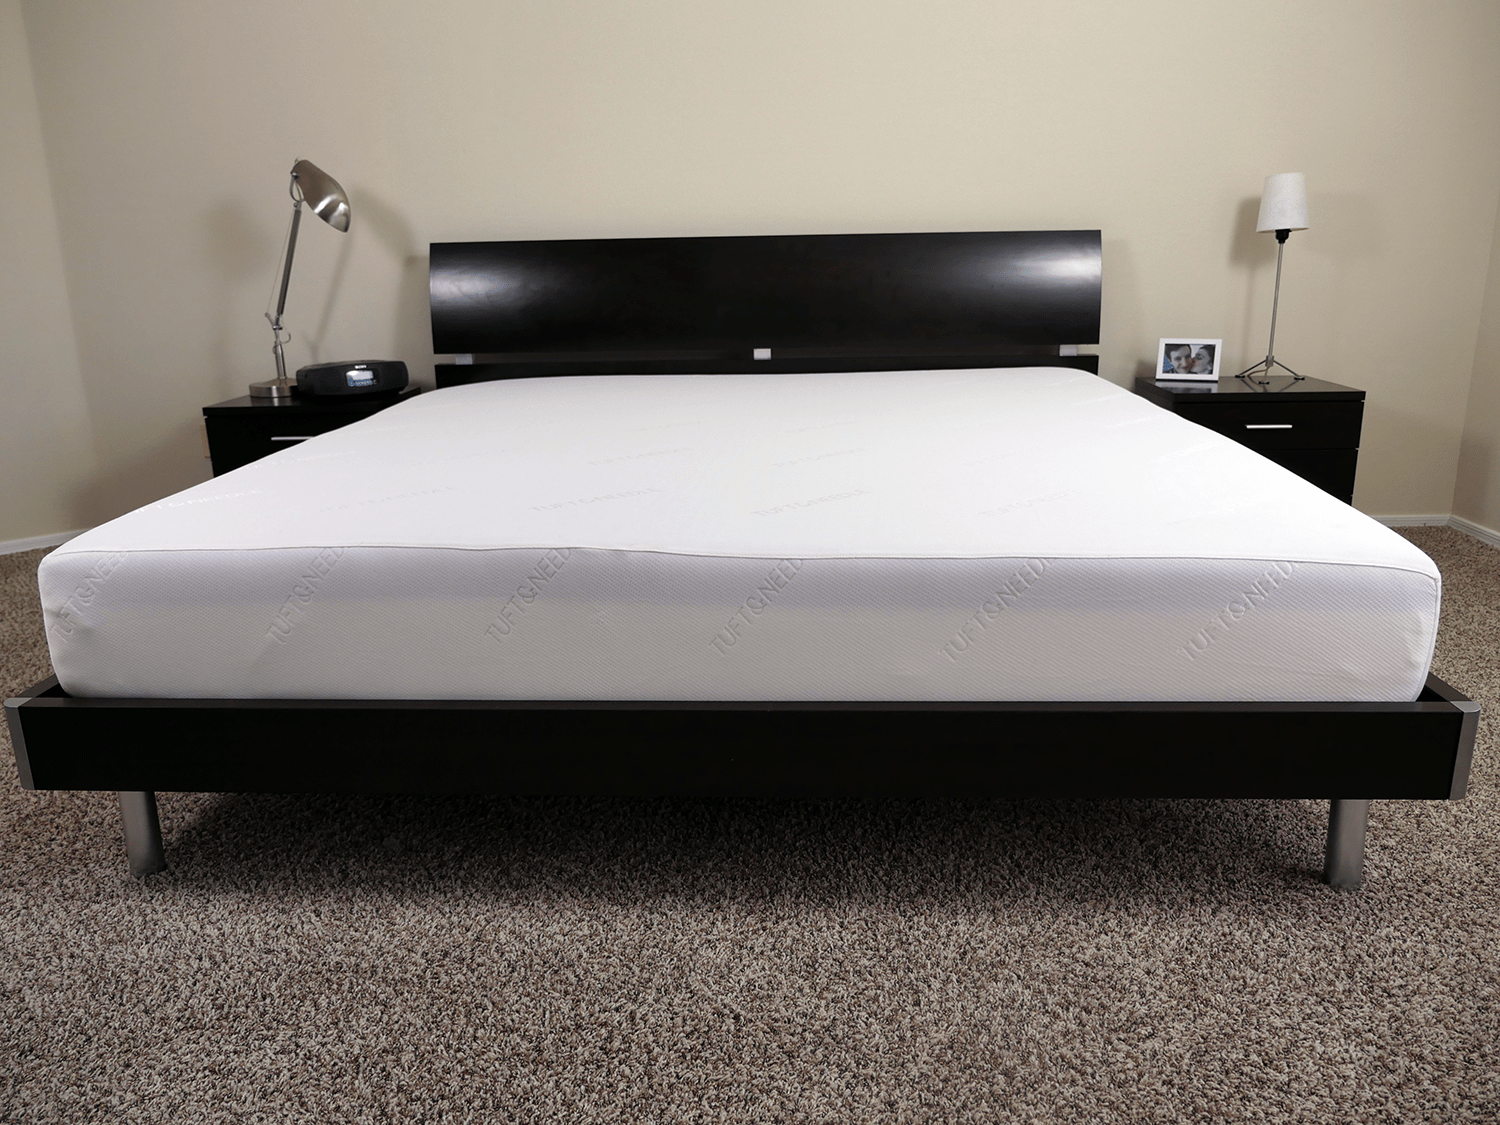 Tuft needle mattress review sleepopolis for Brooklyn bedding vs tempurpedic